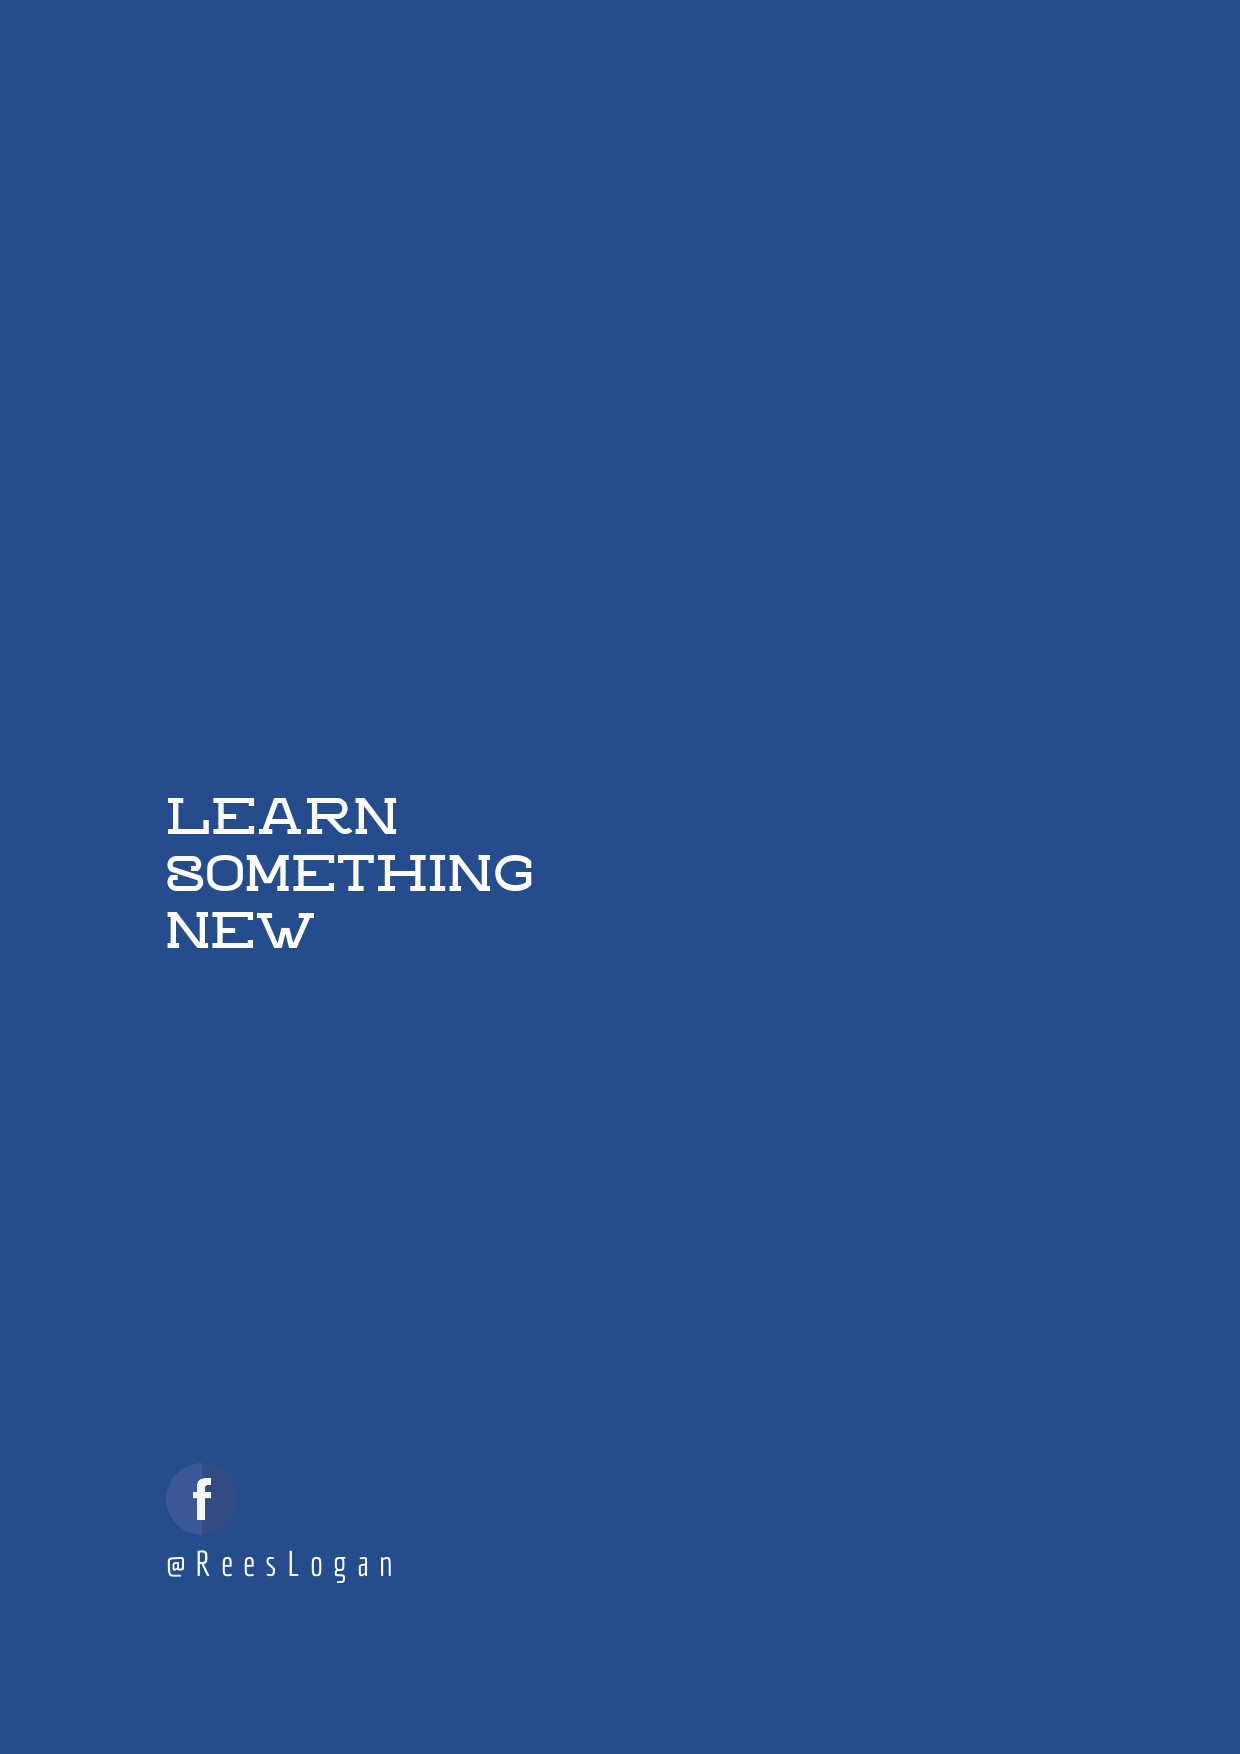 Blue,                Text,                Sky,                Font,                Atmosphere,                Line,                Product,                Computer,                Wallpaper,                Graphics,                Brand,                Symbol,                Electric,                 Free Image